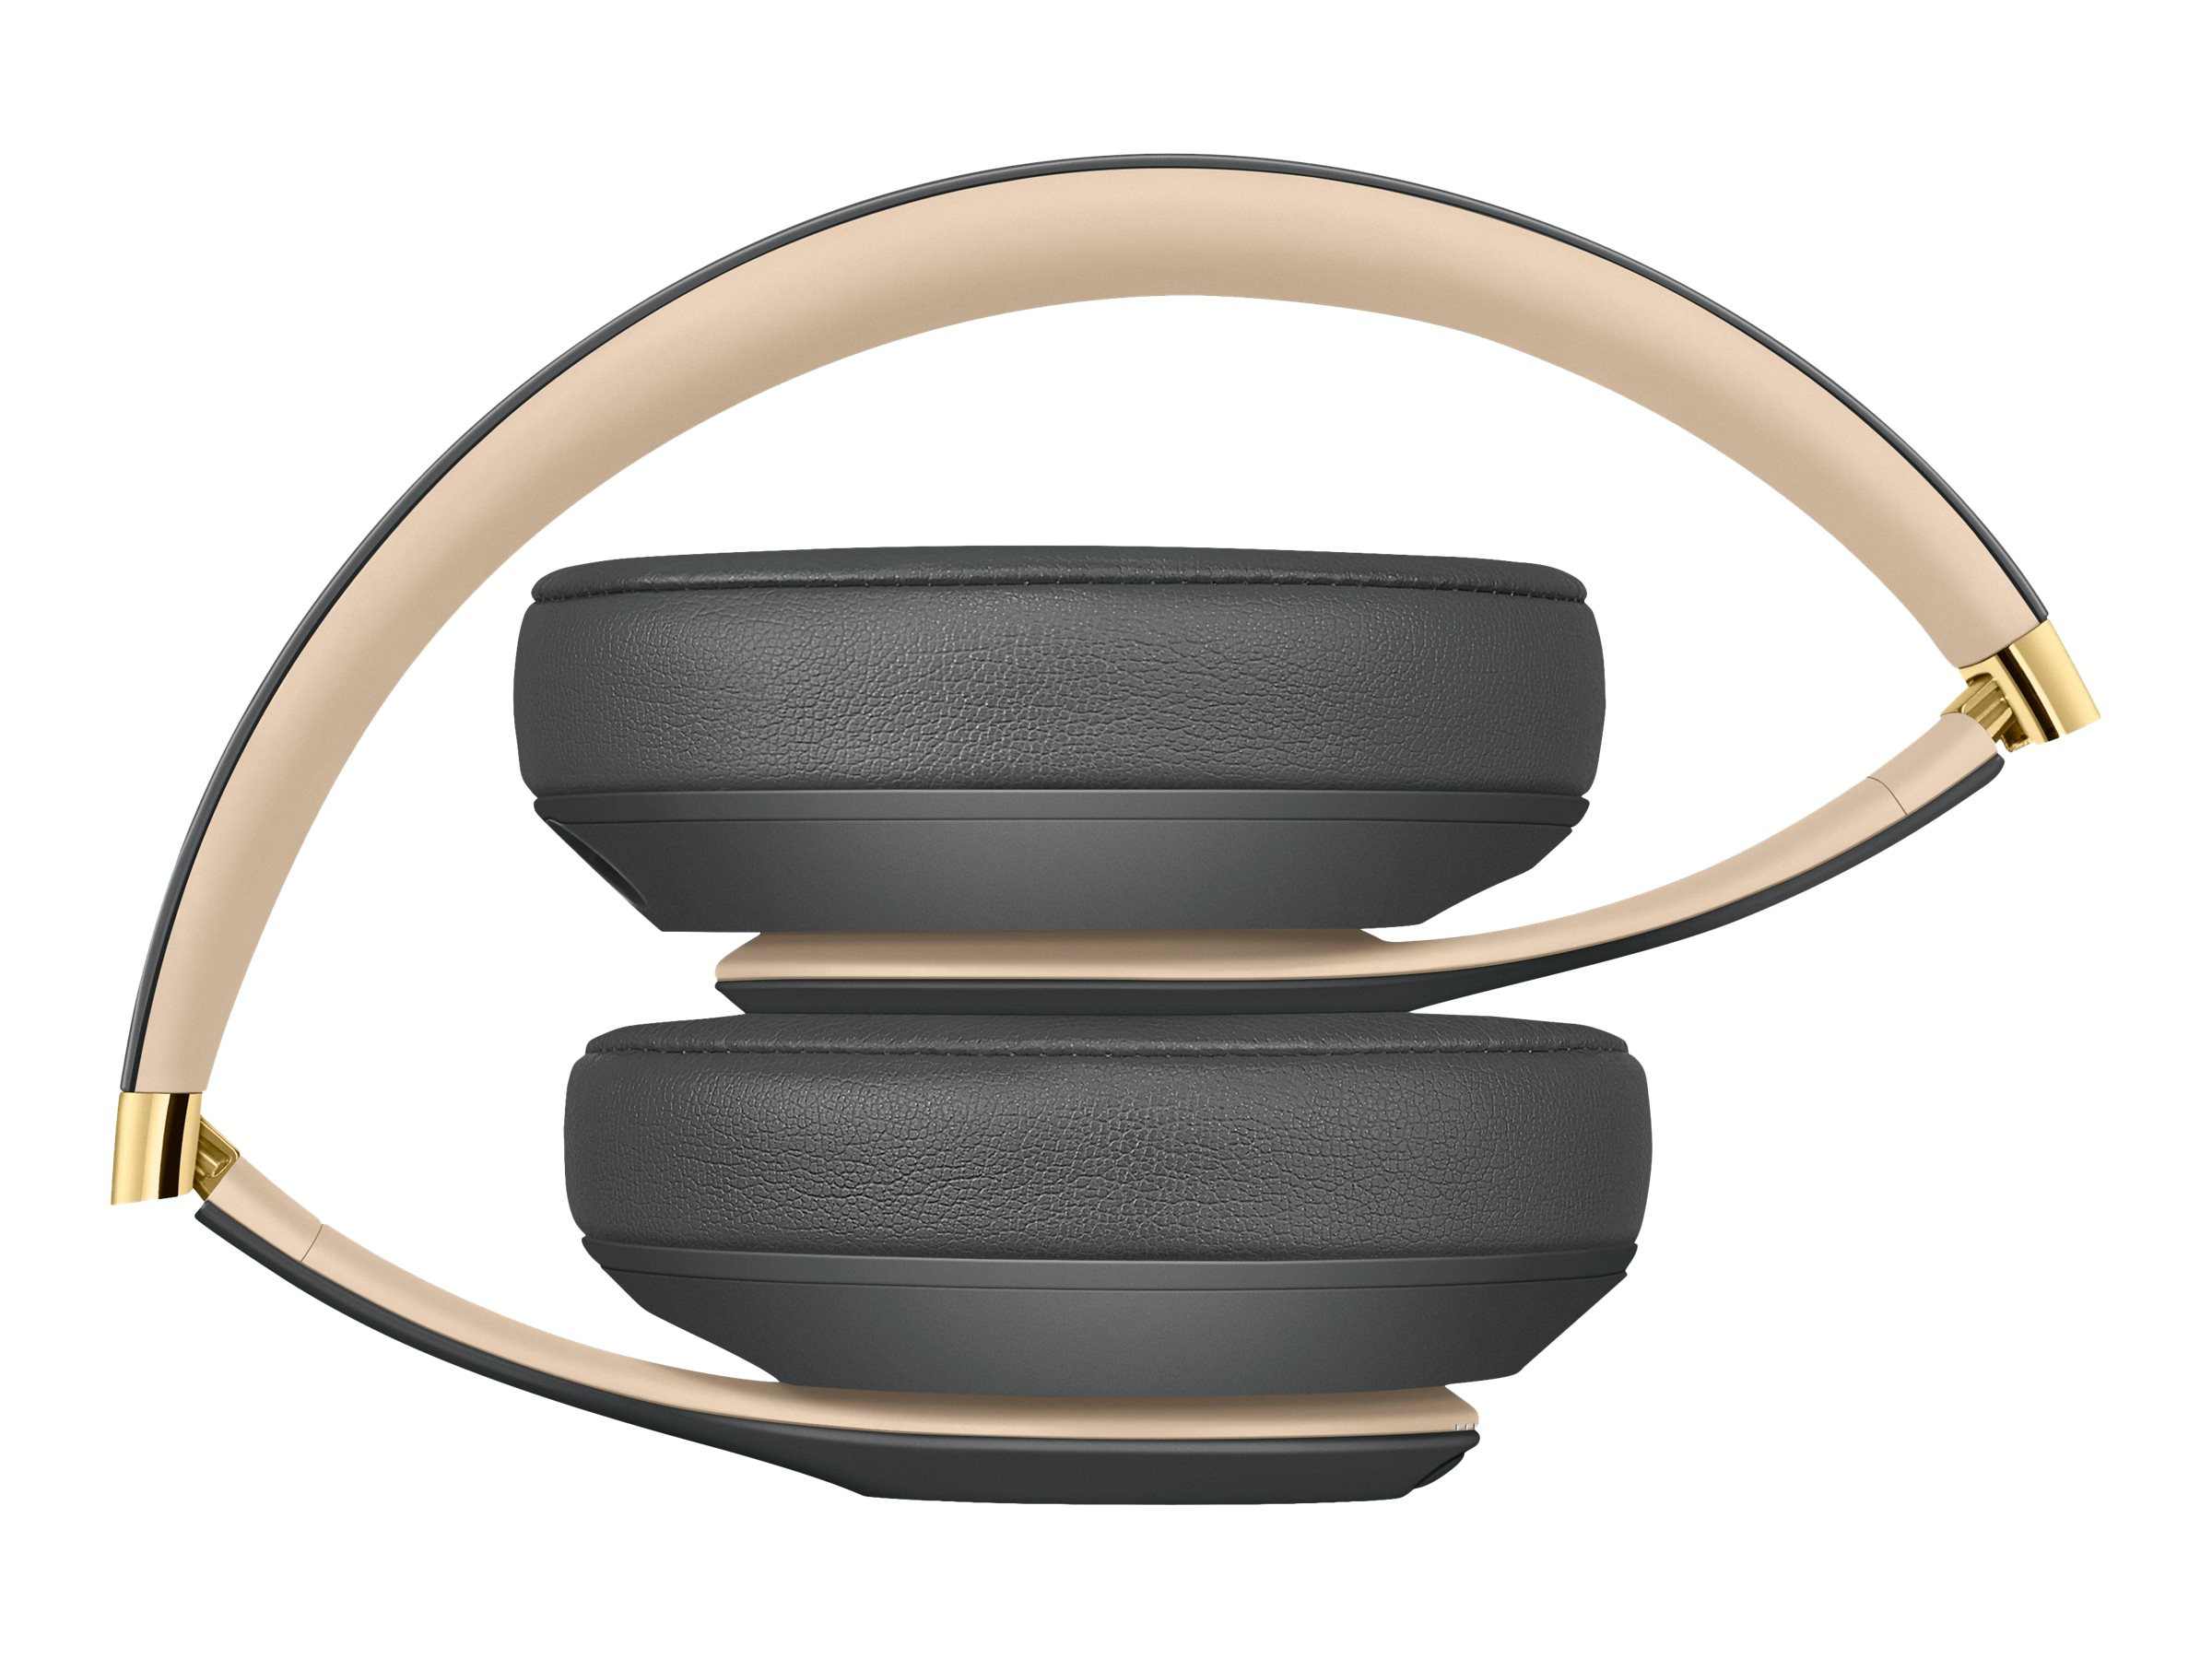 Beats Studio3 Wireless - The Beats Skyline Collection - Kopfhörer mit Mikrofon - ohrumschließend - Bluetooth - kabellos